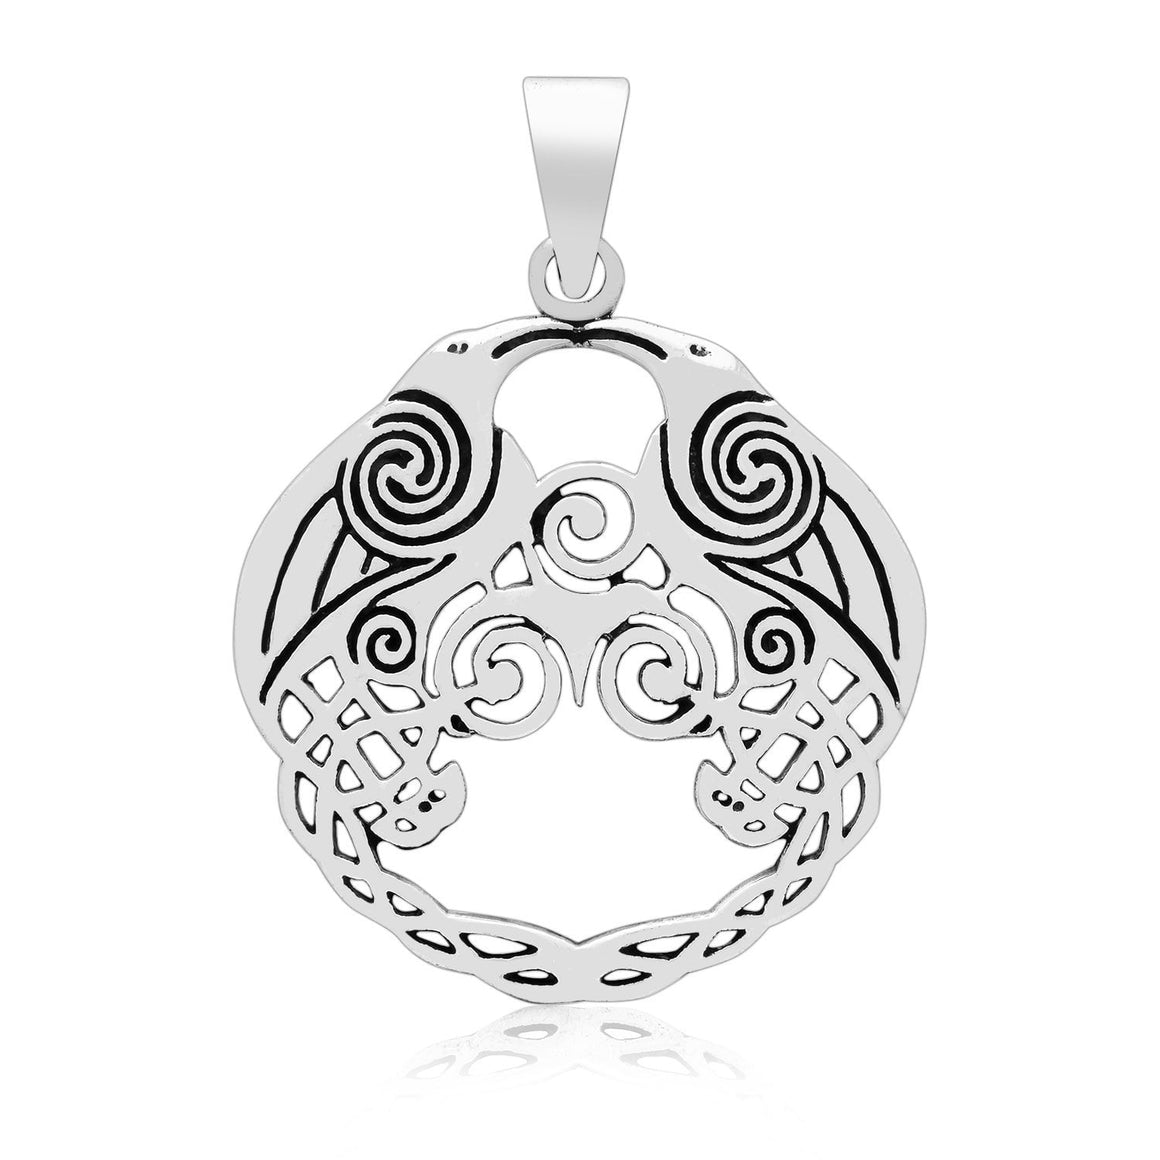 925 Sterling Silver Viking Huginn and Muninn Raven Pendant - SilverMania925